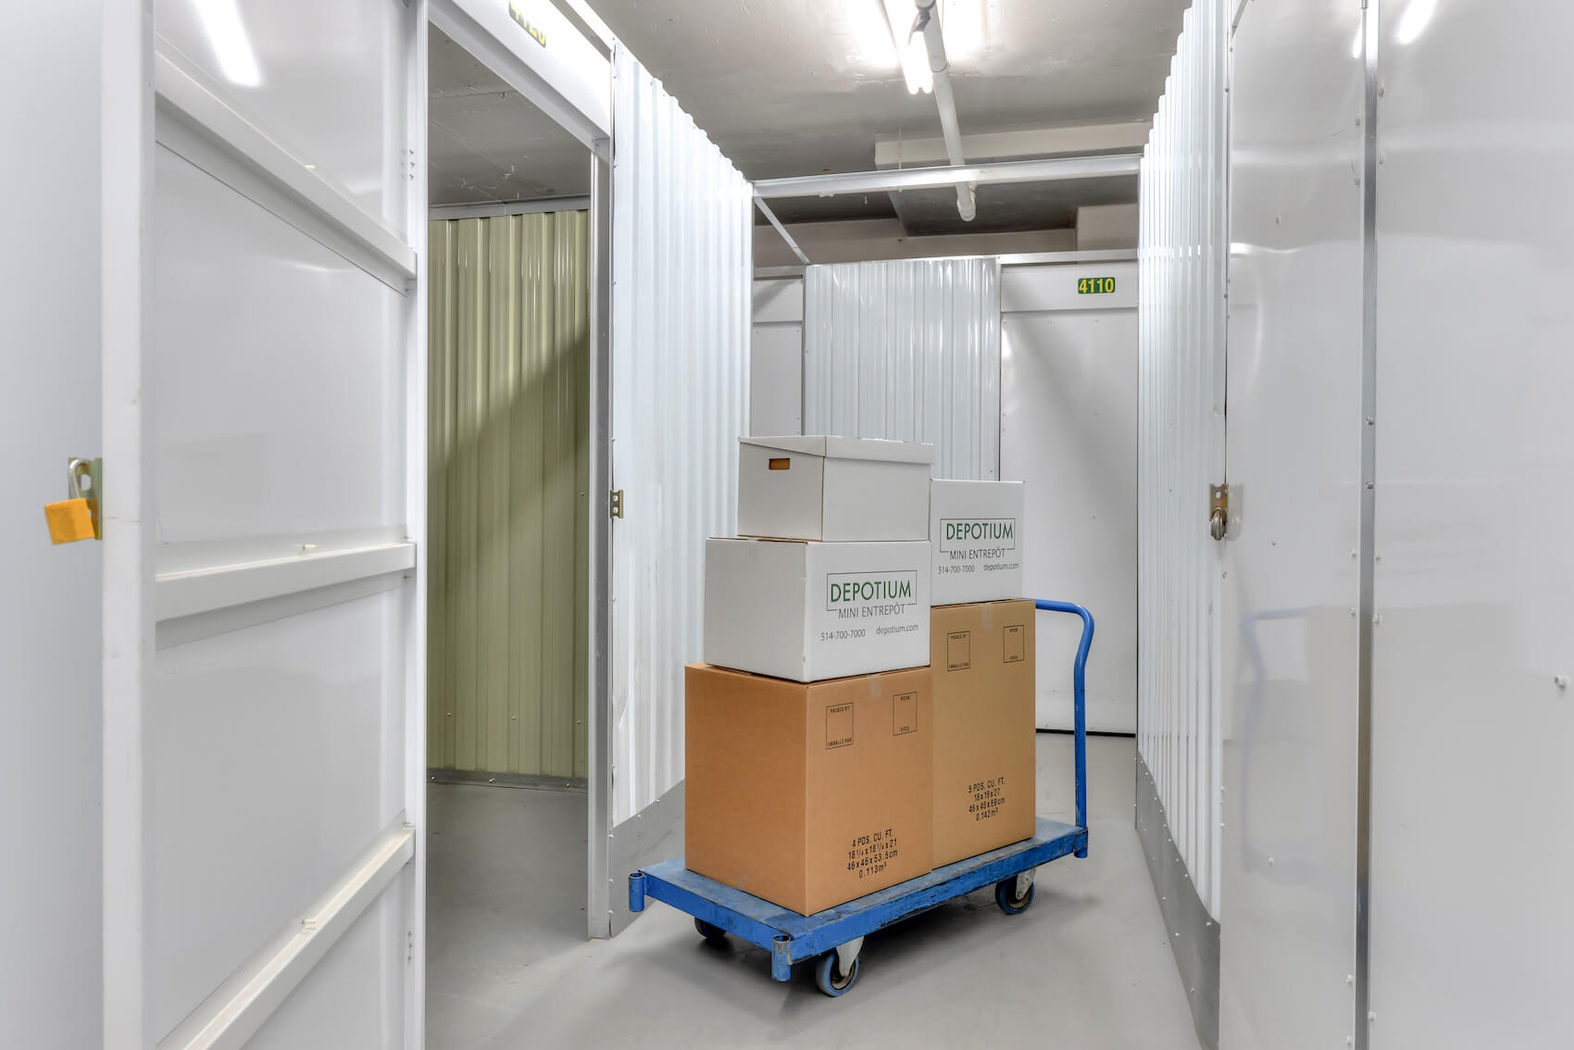 Rent Montreal storage units at 8469 8ième Ave. We offer a wide-range of affordable self storage units and your first 4 weeks are free!